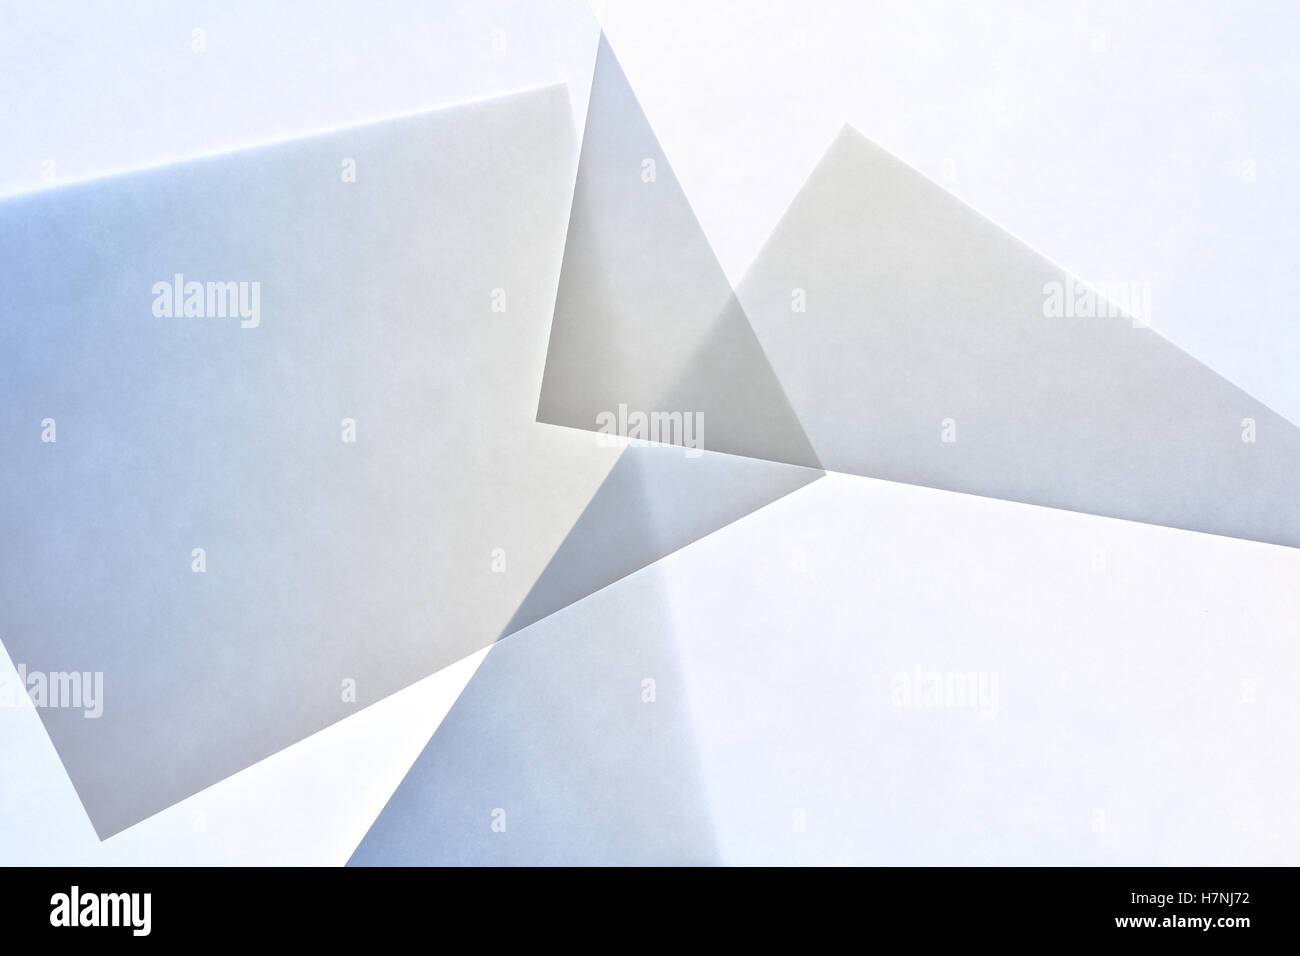 gradient paper texture abstract - Stock Image